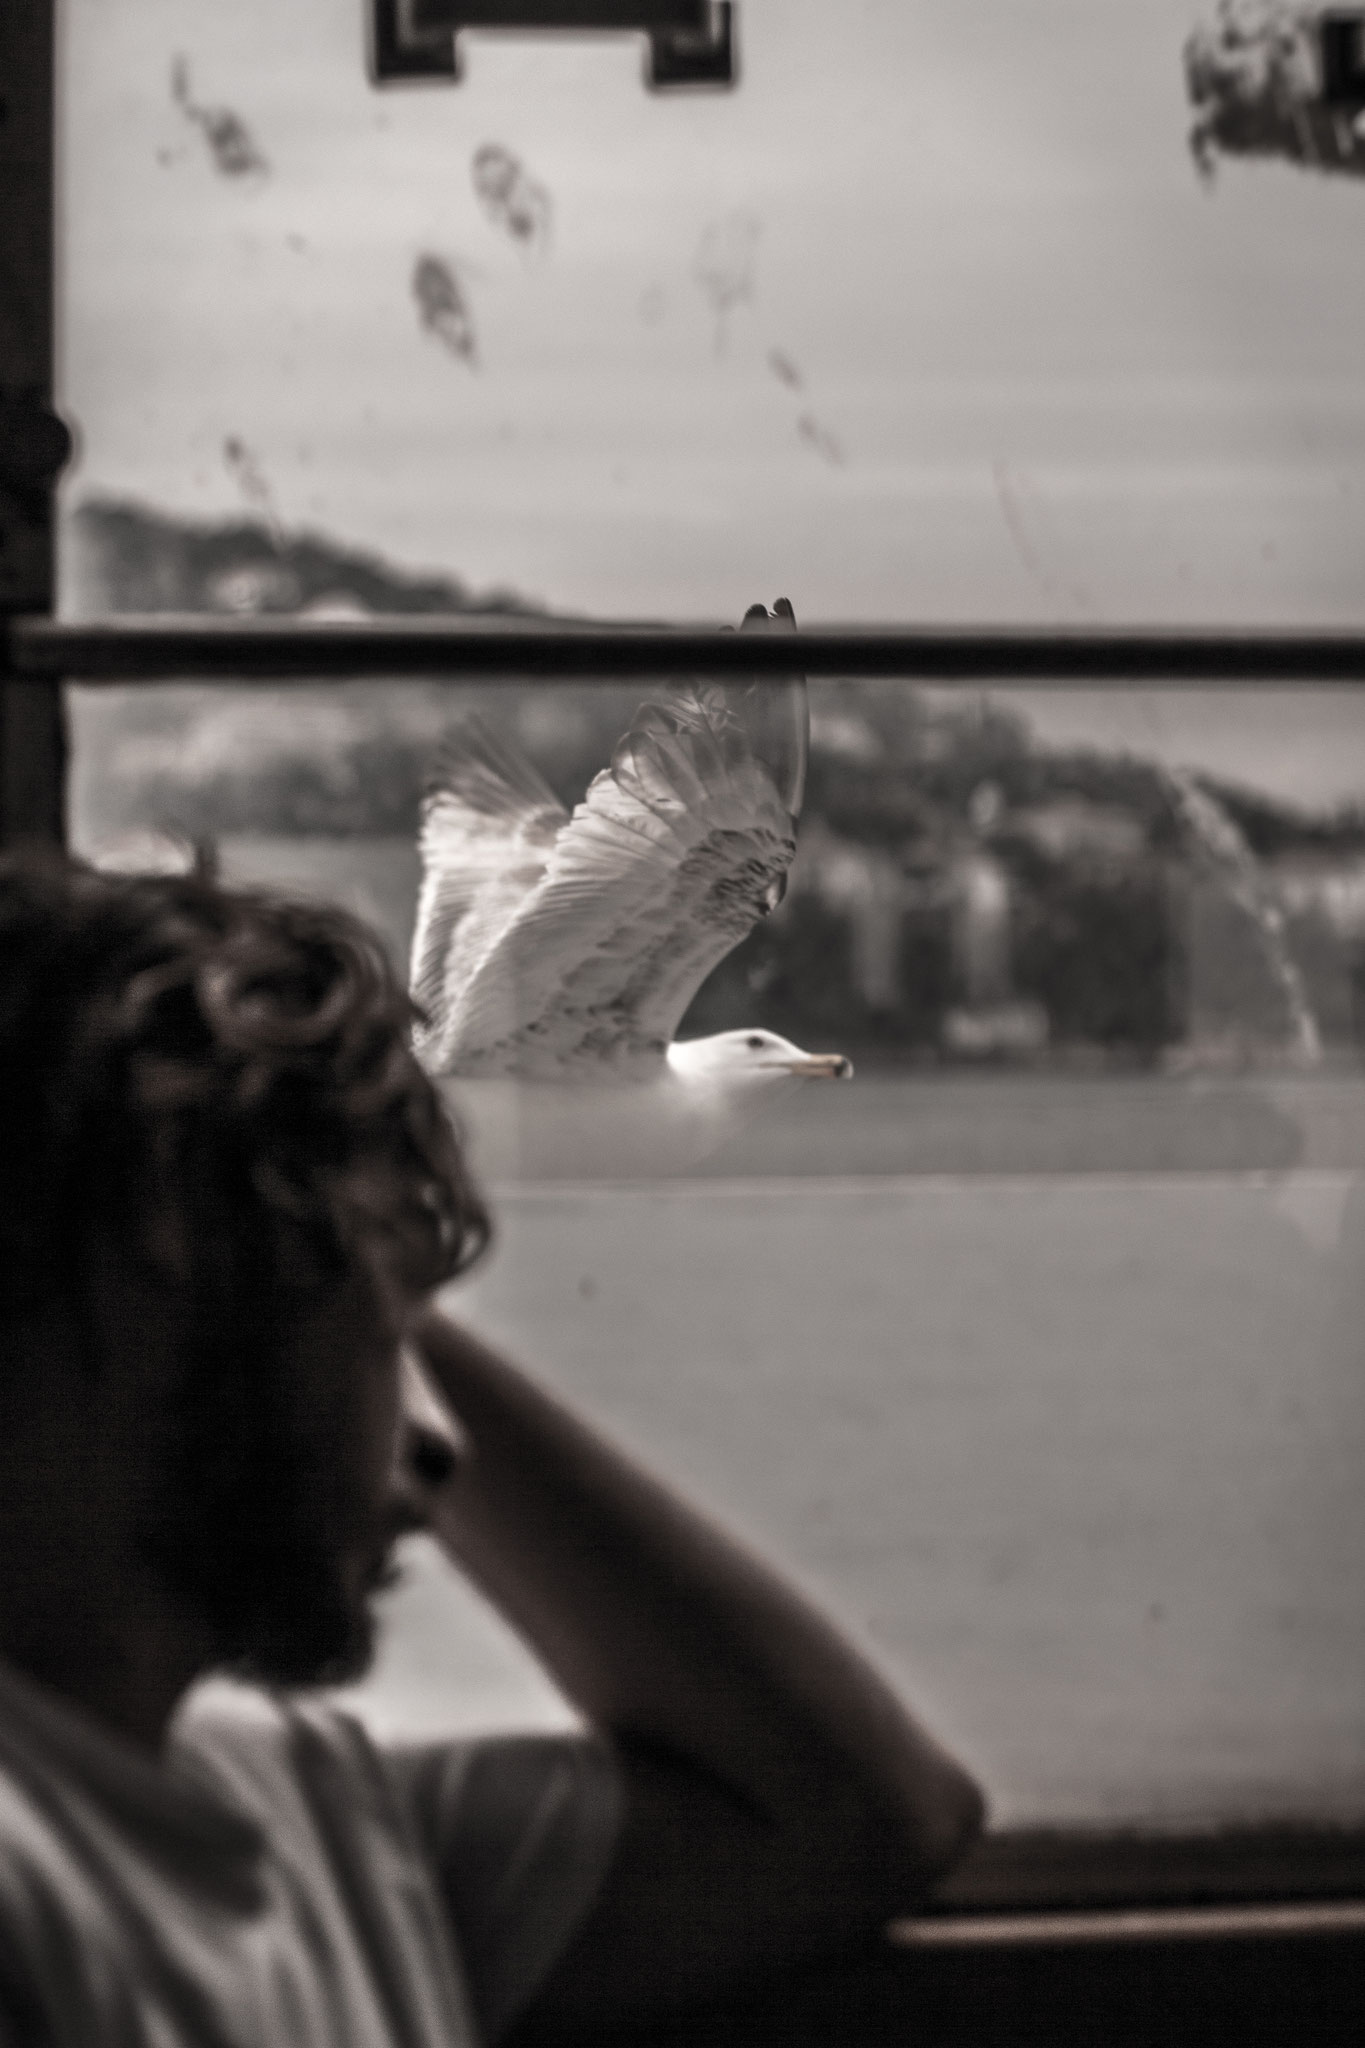 Seagulls through a ferry window, Istanbul. June 2016.